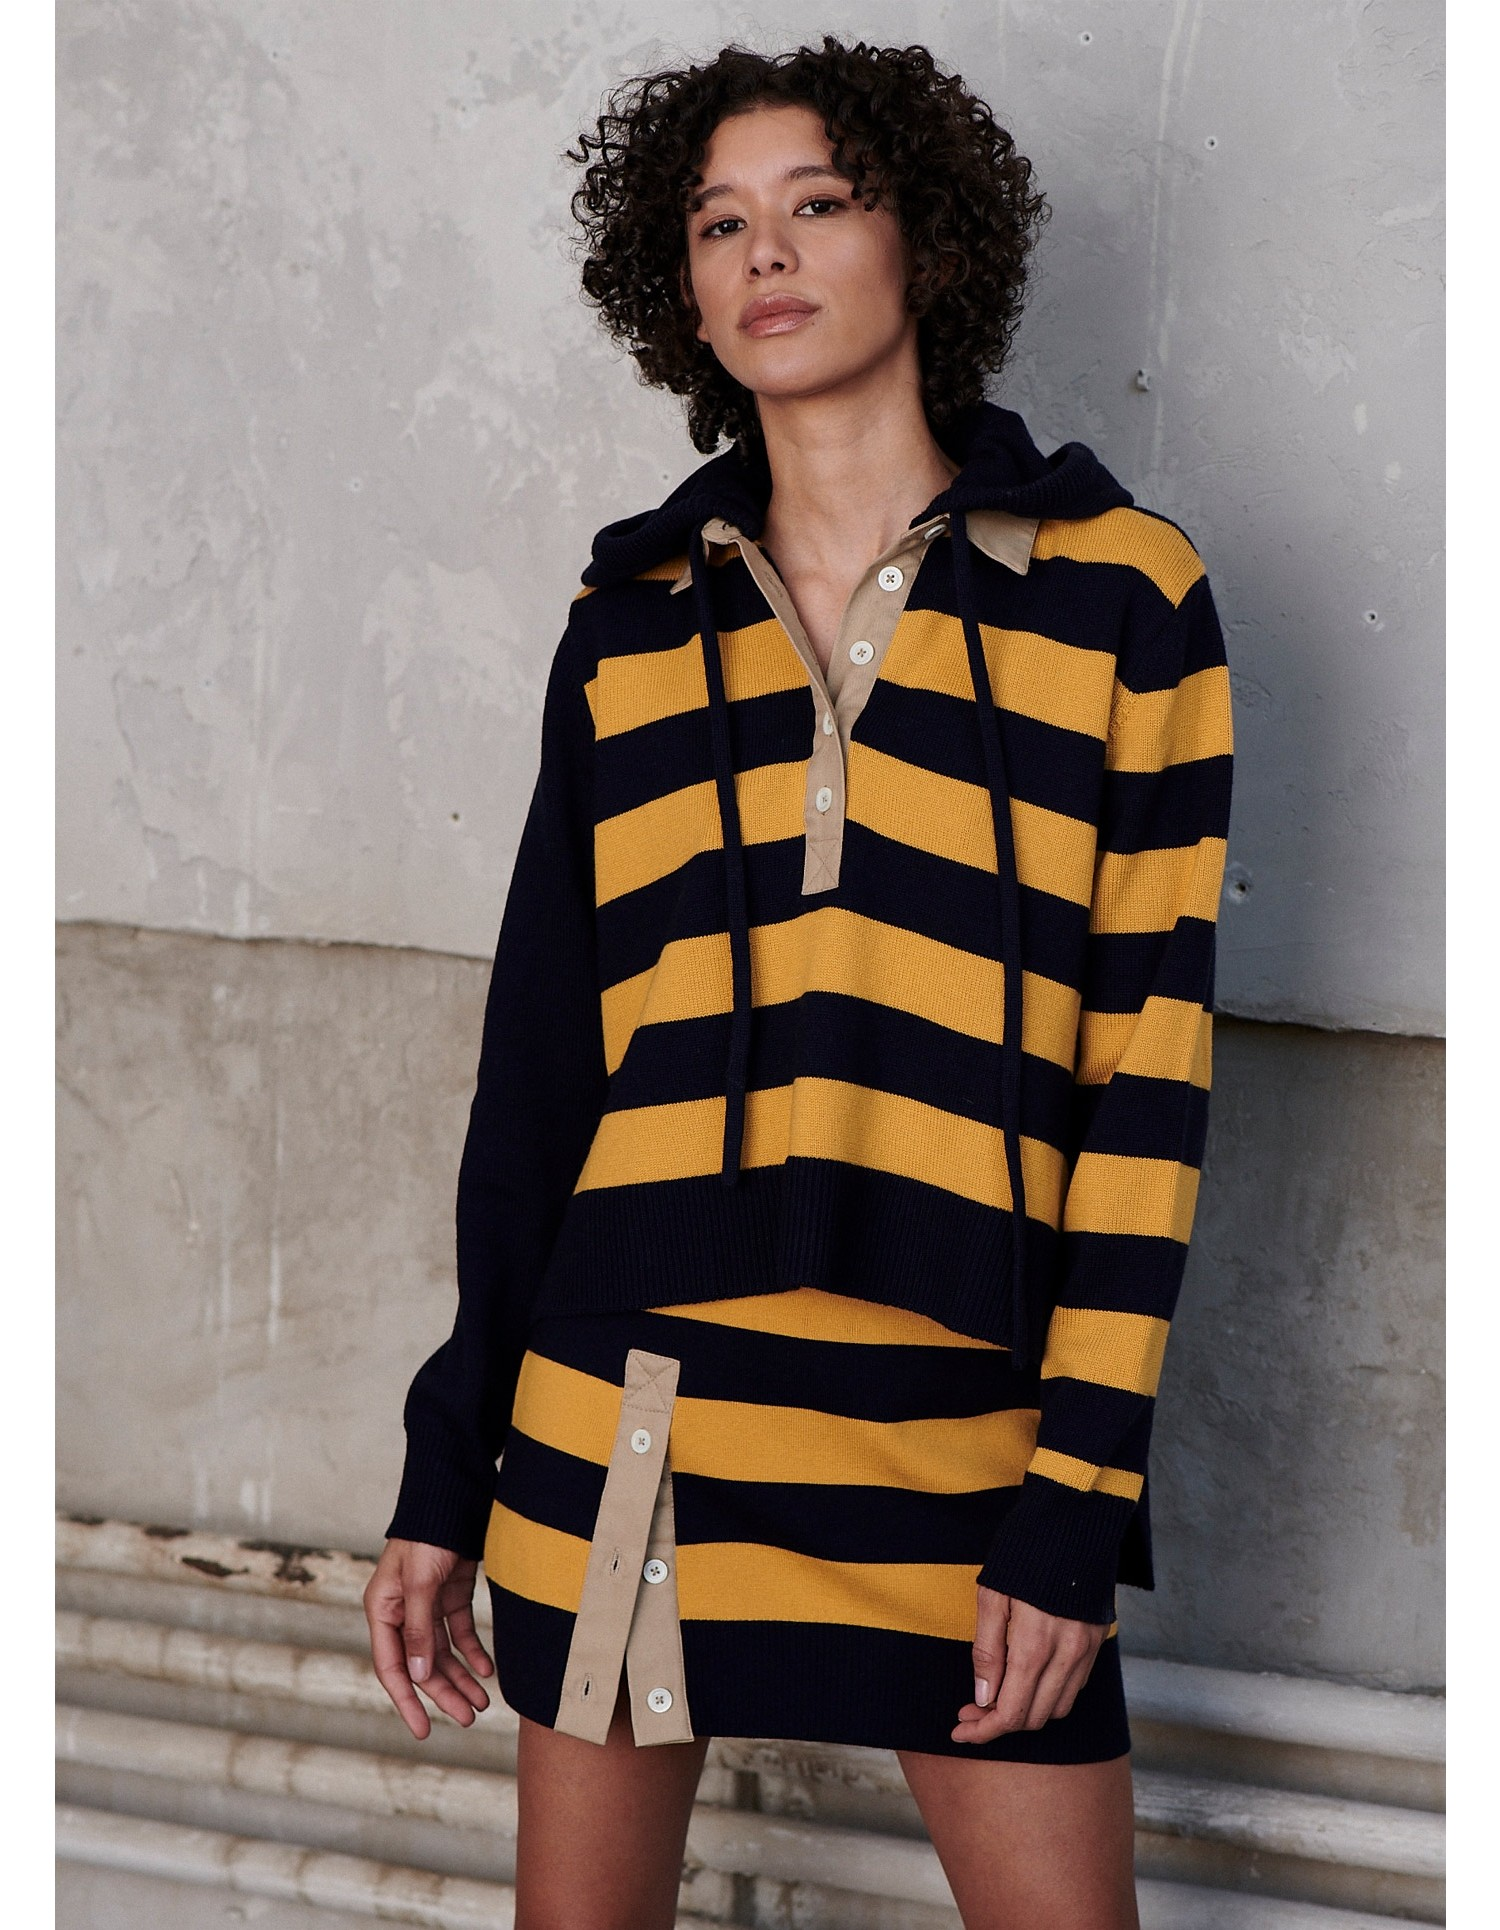 MONSE Rugby Striped Knit Hoodie on Model Front View